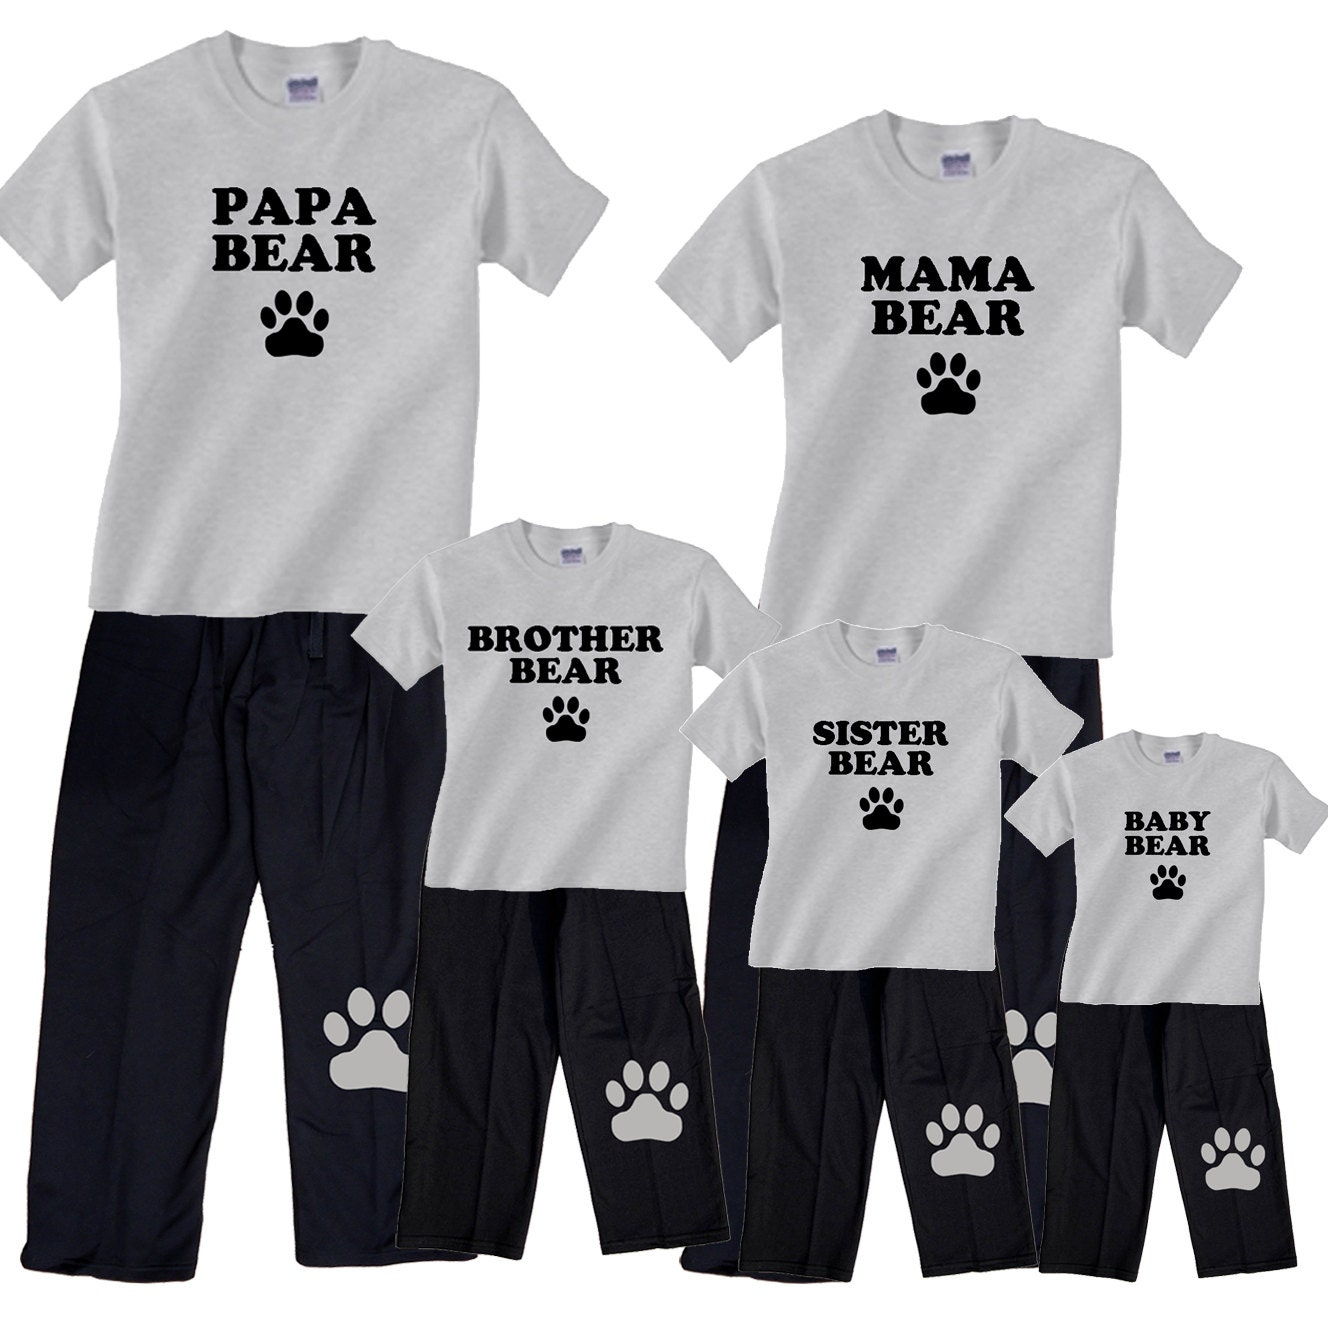 Bear Family Matching Pajamas For The Whole Family Mama Bear